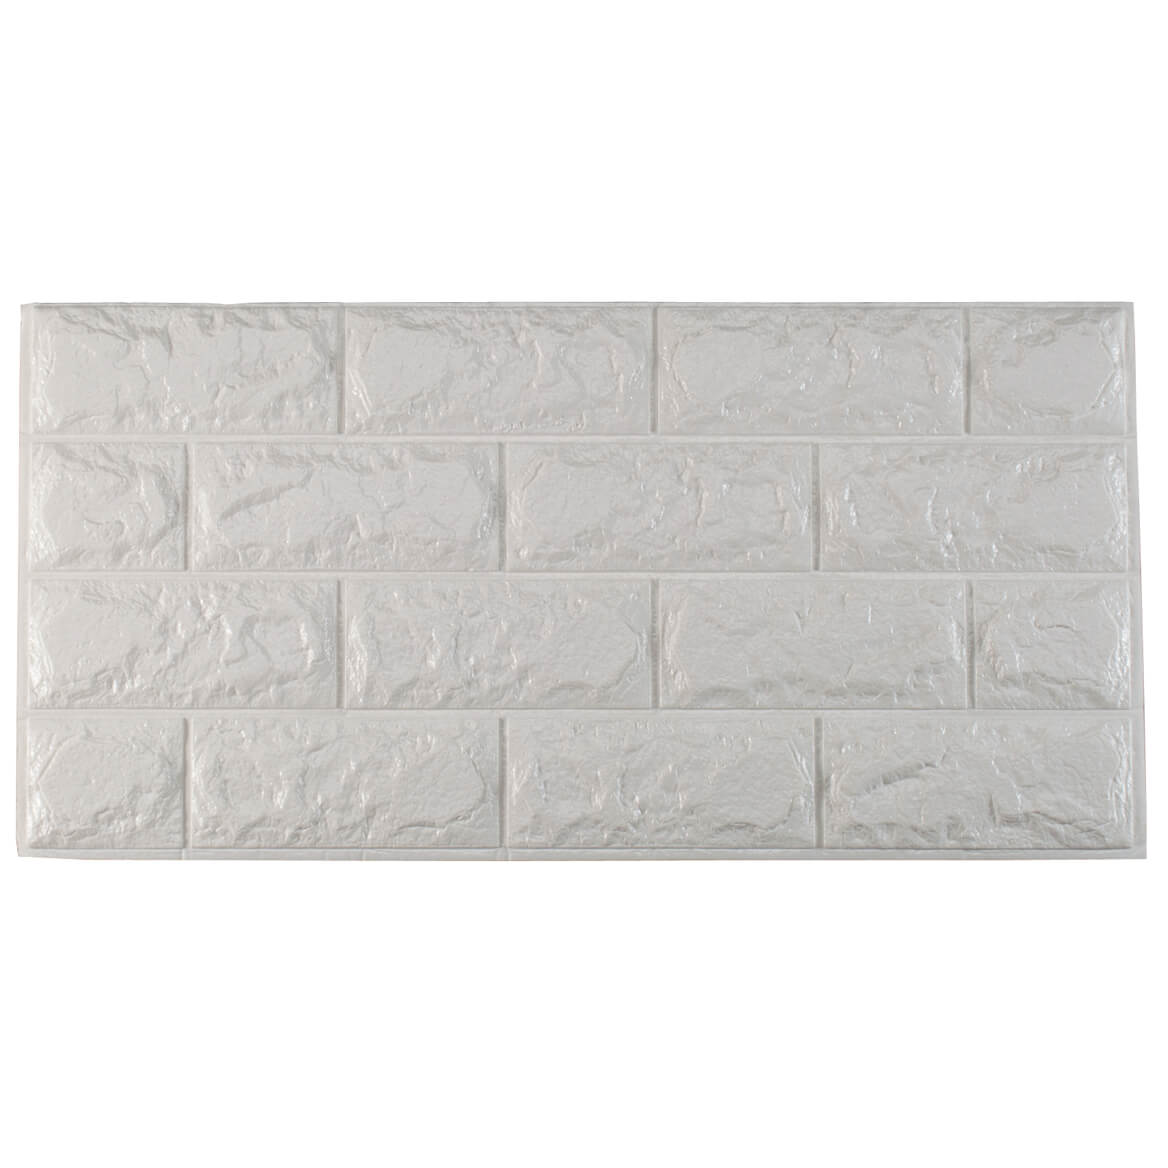 Faux Brick Wall Tile Decals Set of 6  Walmartcom